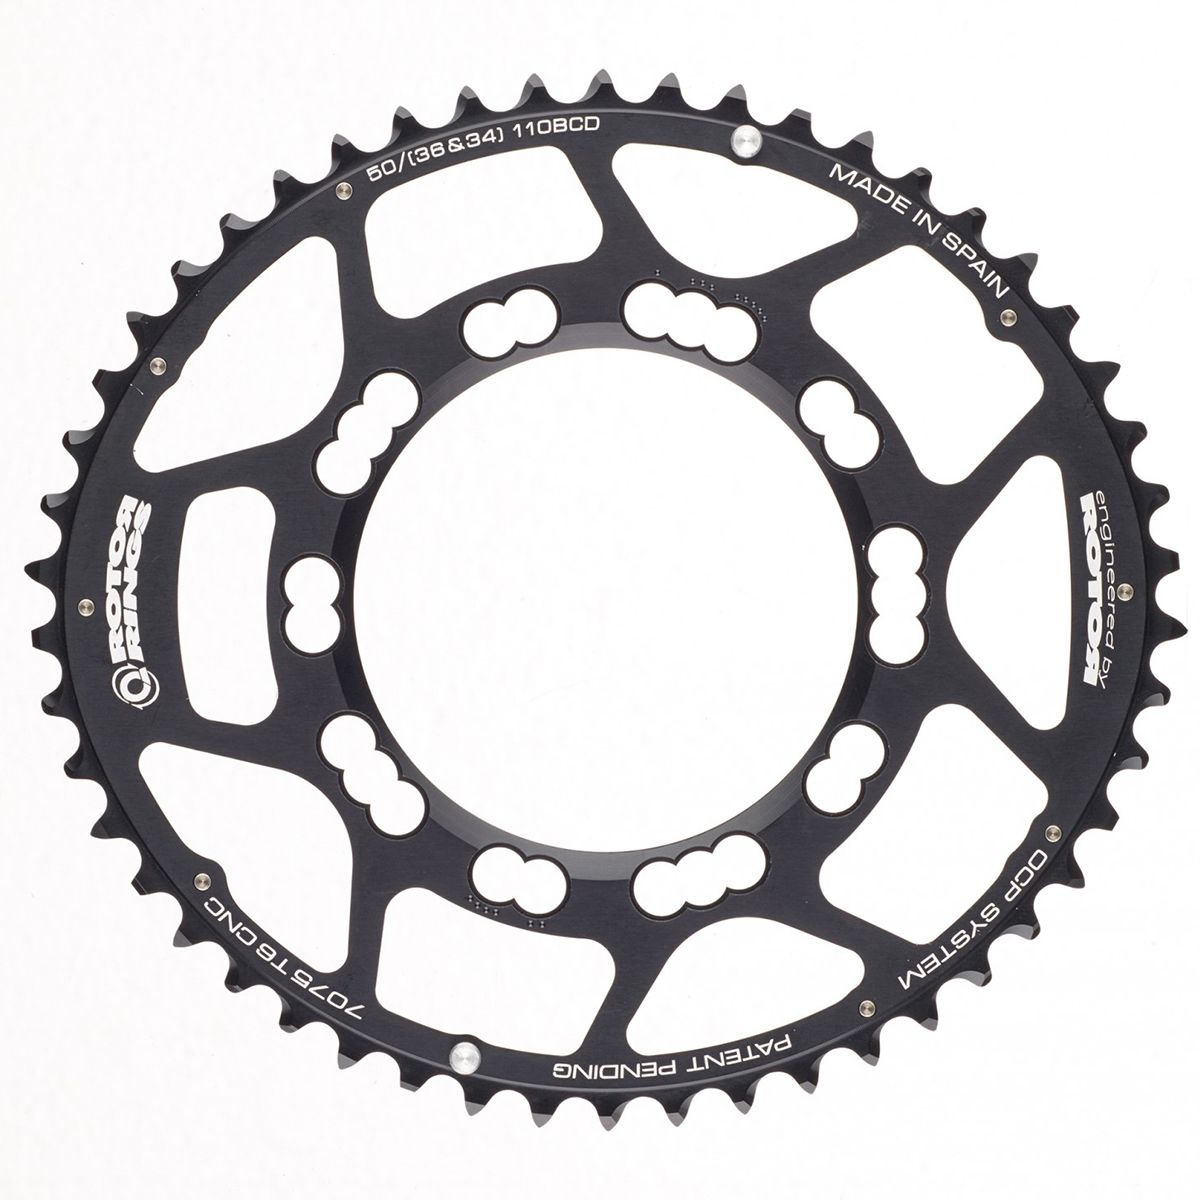 Q-Rings 50-tooth chainring